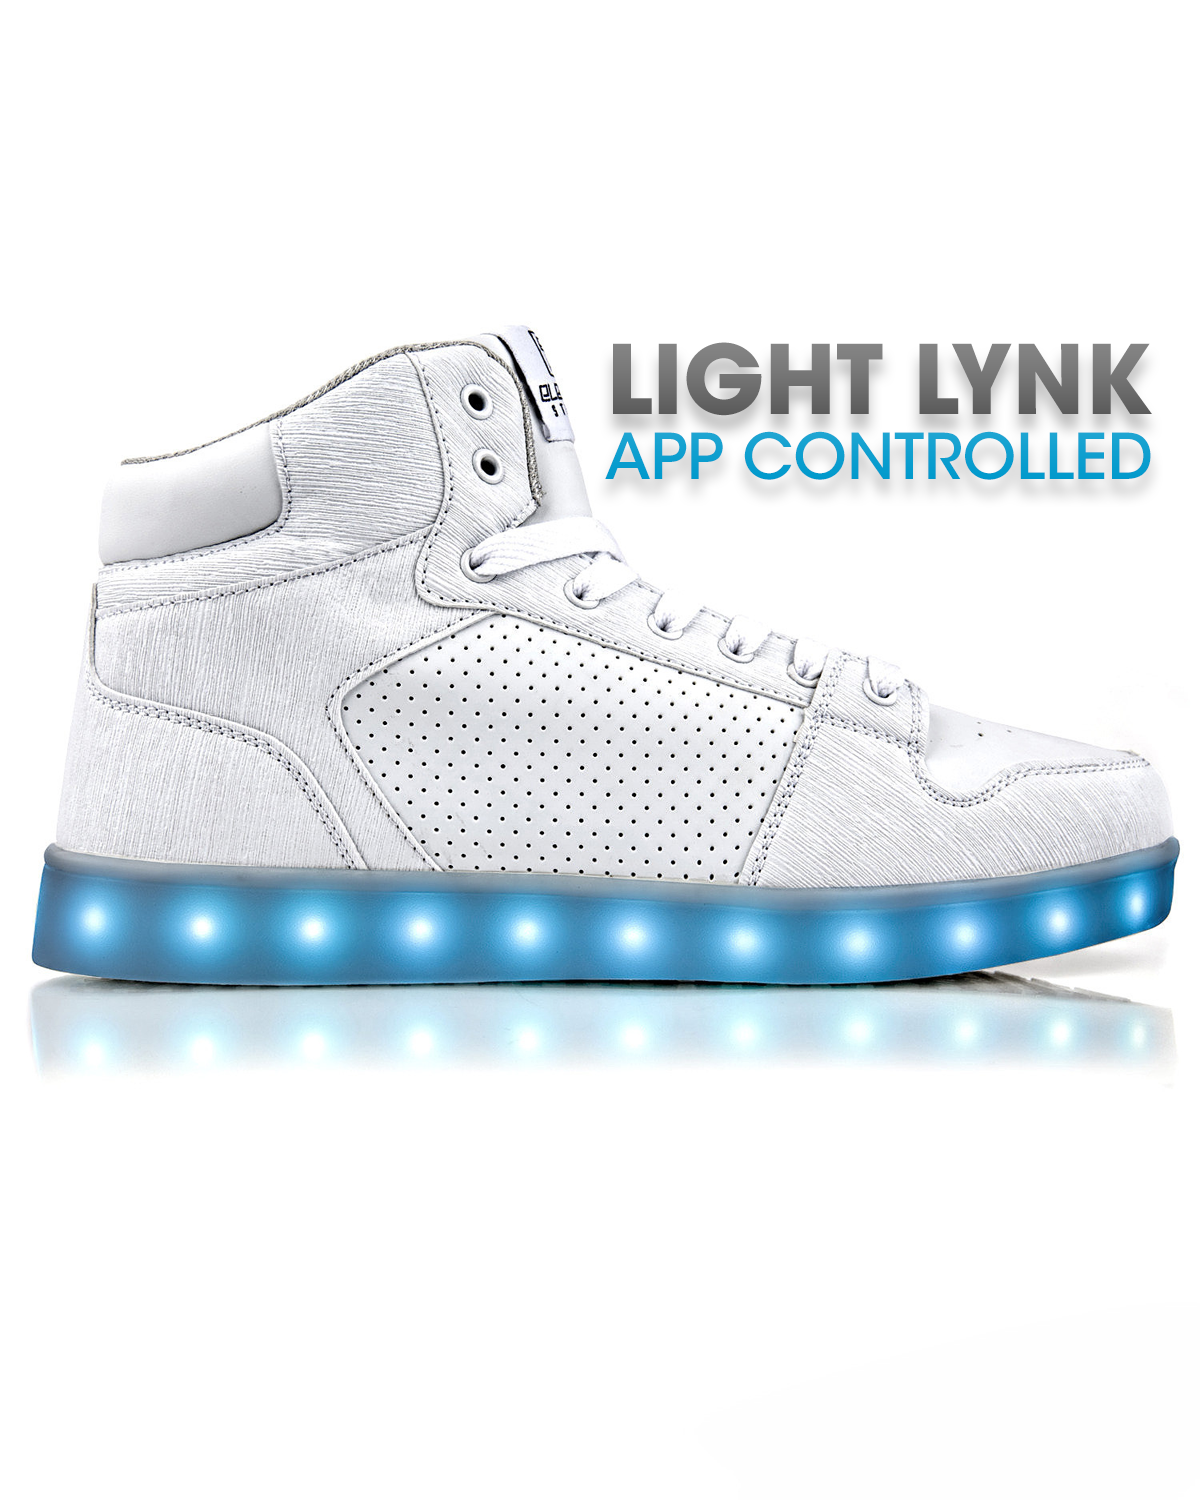 J-Walker - Light Lynk Shoes ( White Leather ) - Electric Styles | World's Number 1 Light Up Shoe Store - {product_type}} -  - 1